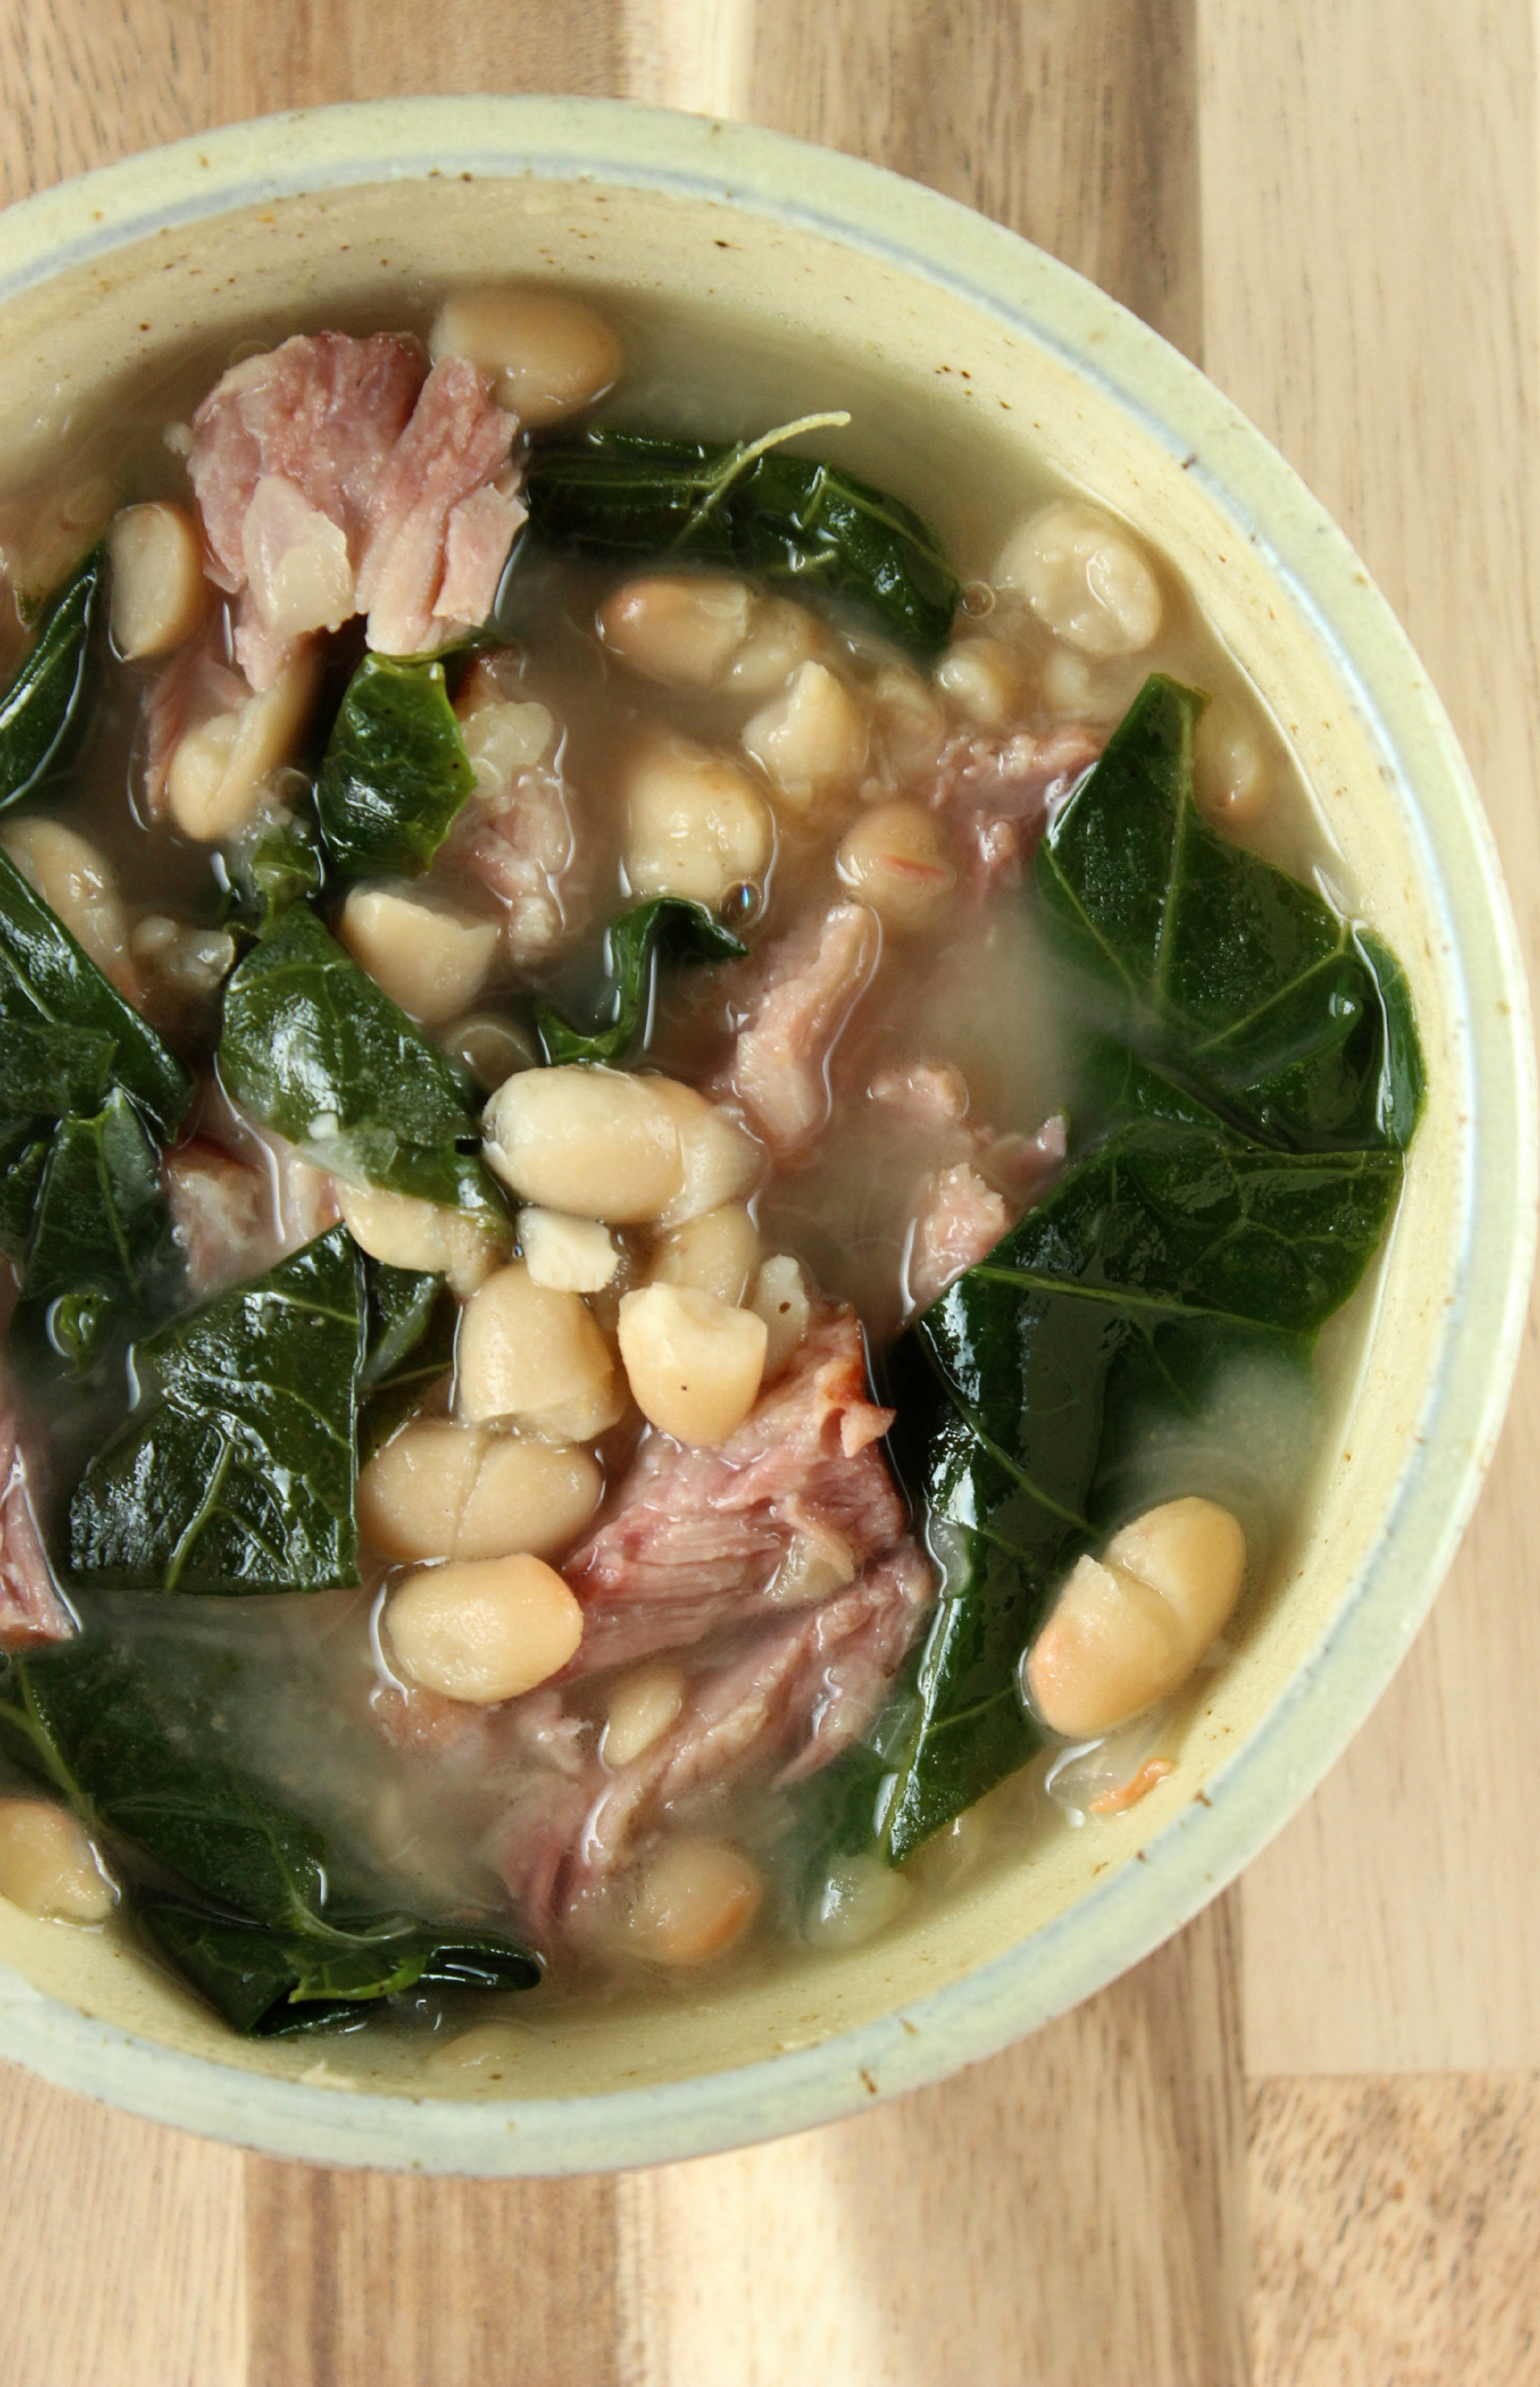 Slow cooked ham and beans with collared greens.